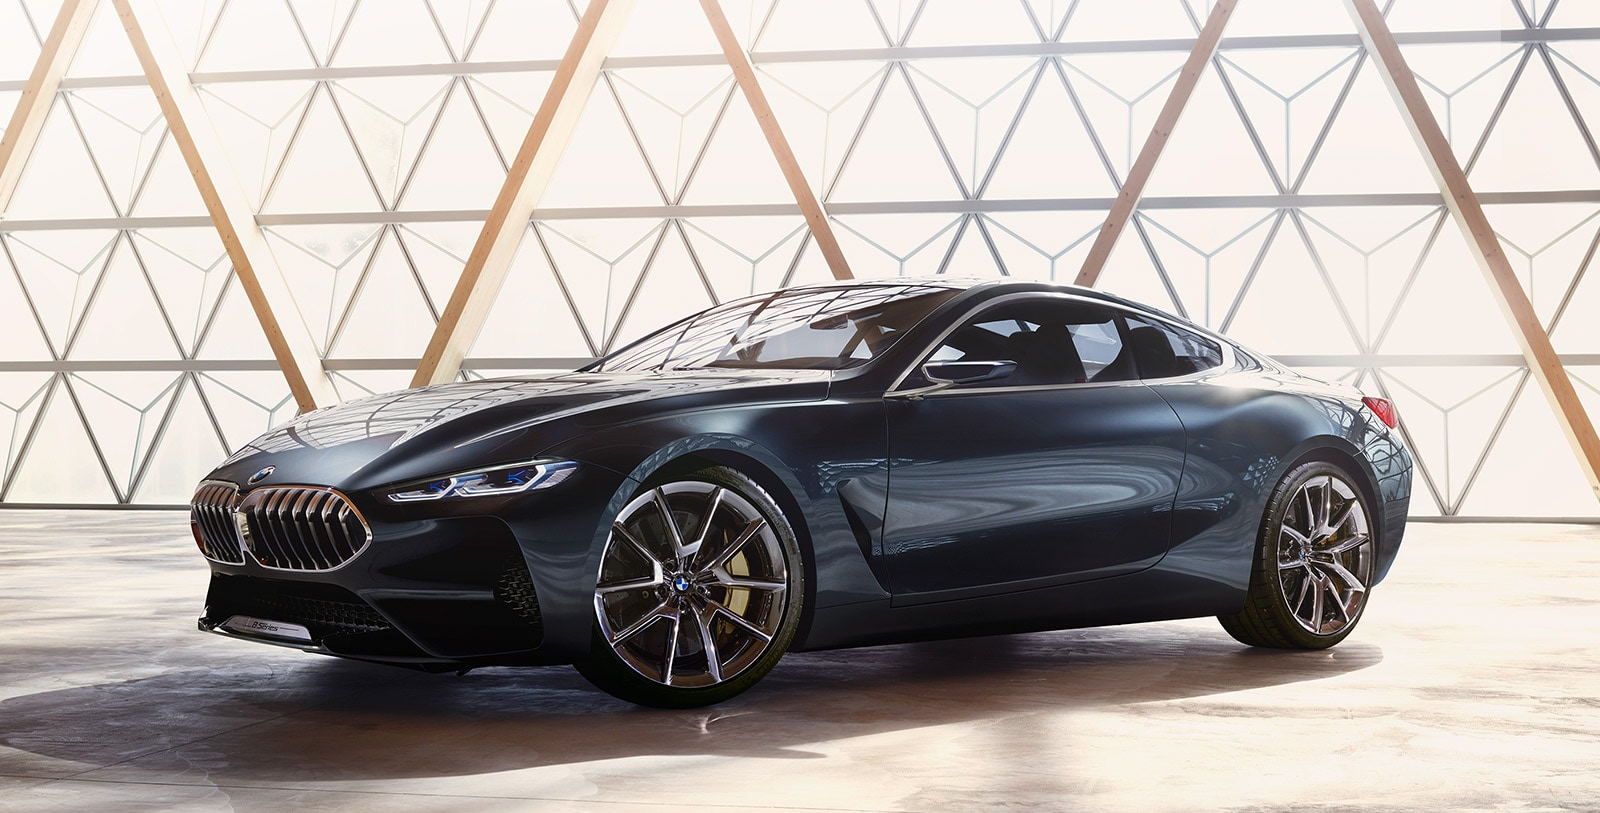 BMW 8 Series Overview - BMW North America